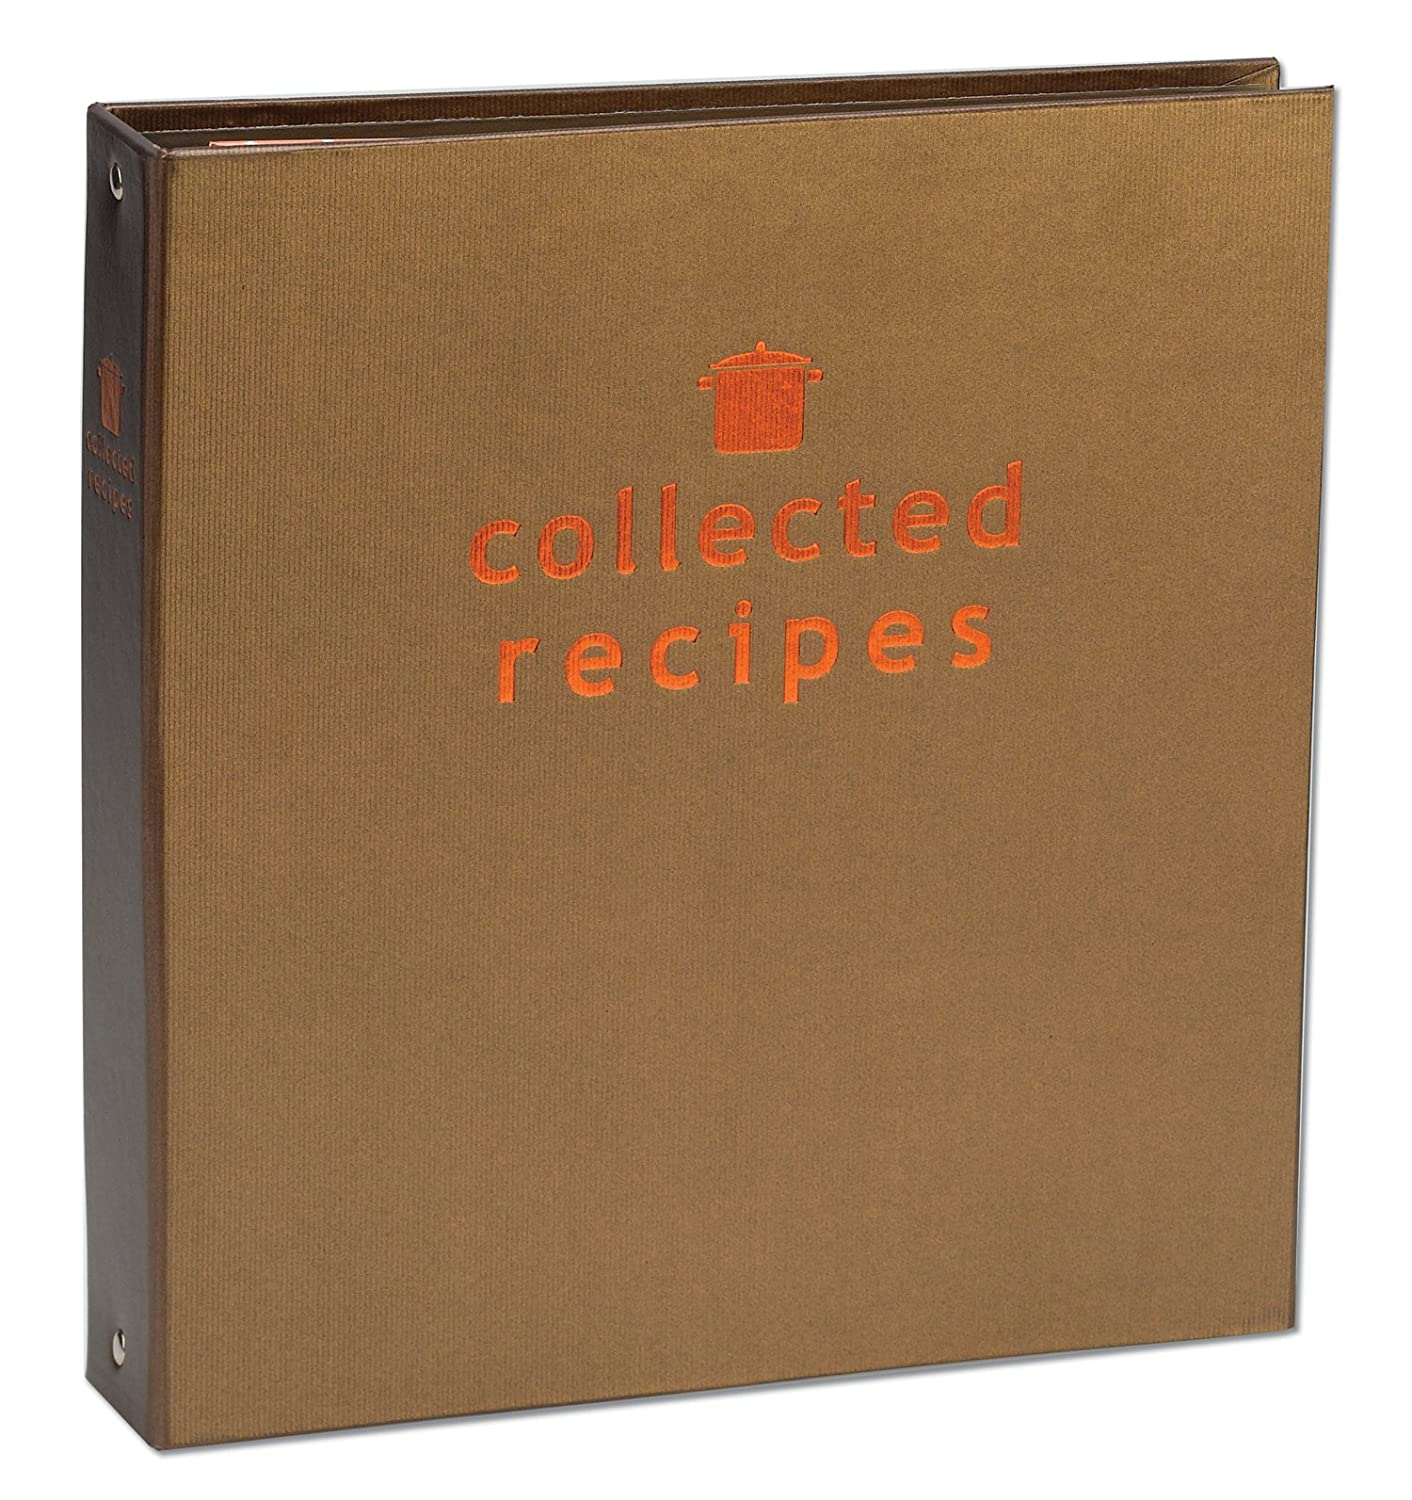 Meadowsweet Kitchens Create Your Own Collected Recipes Cookbook - Brown & Copper